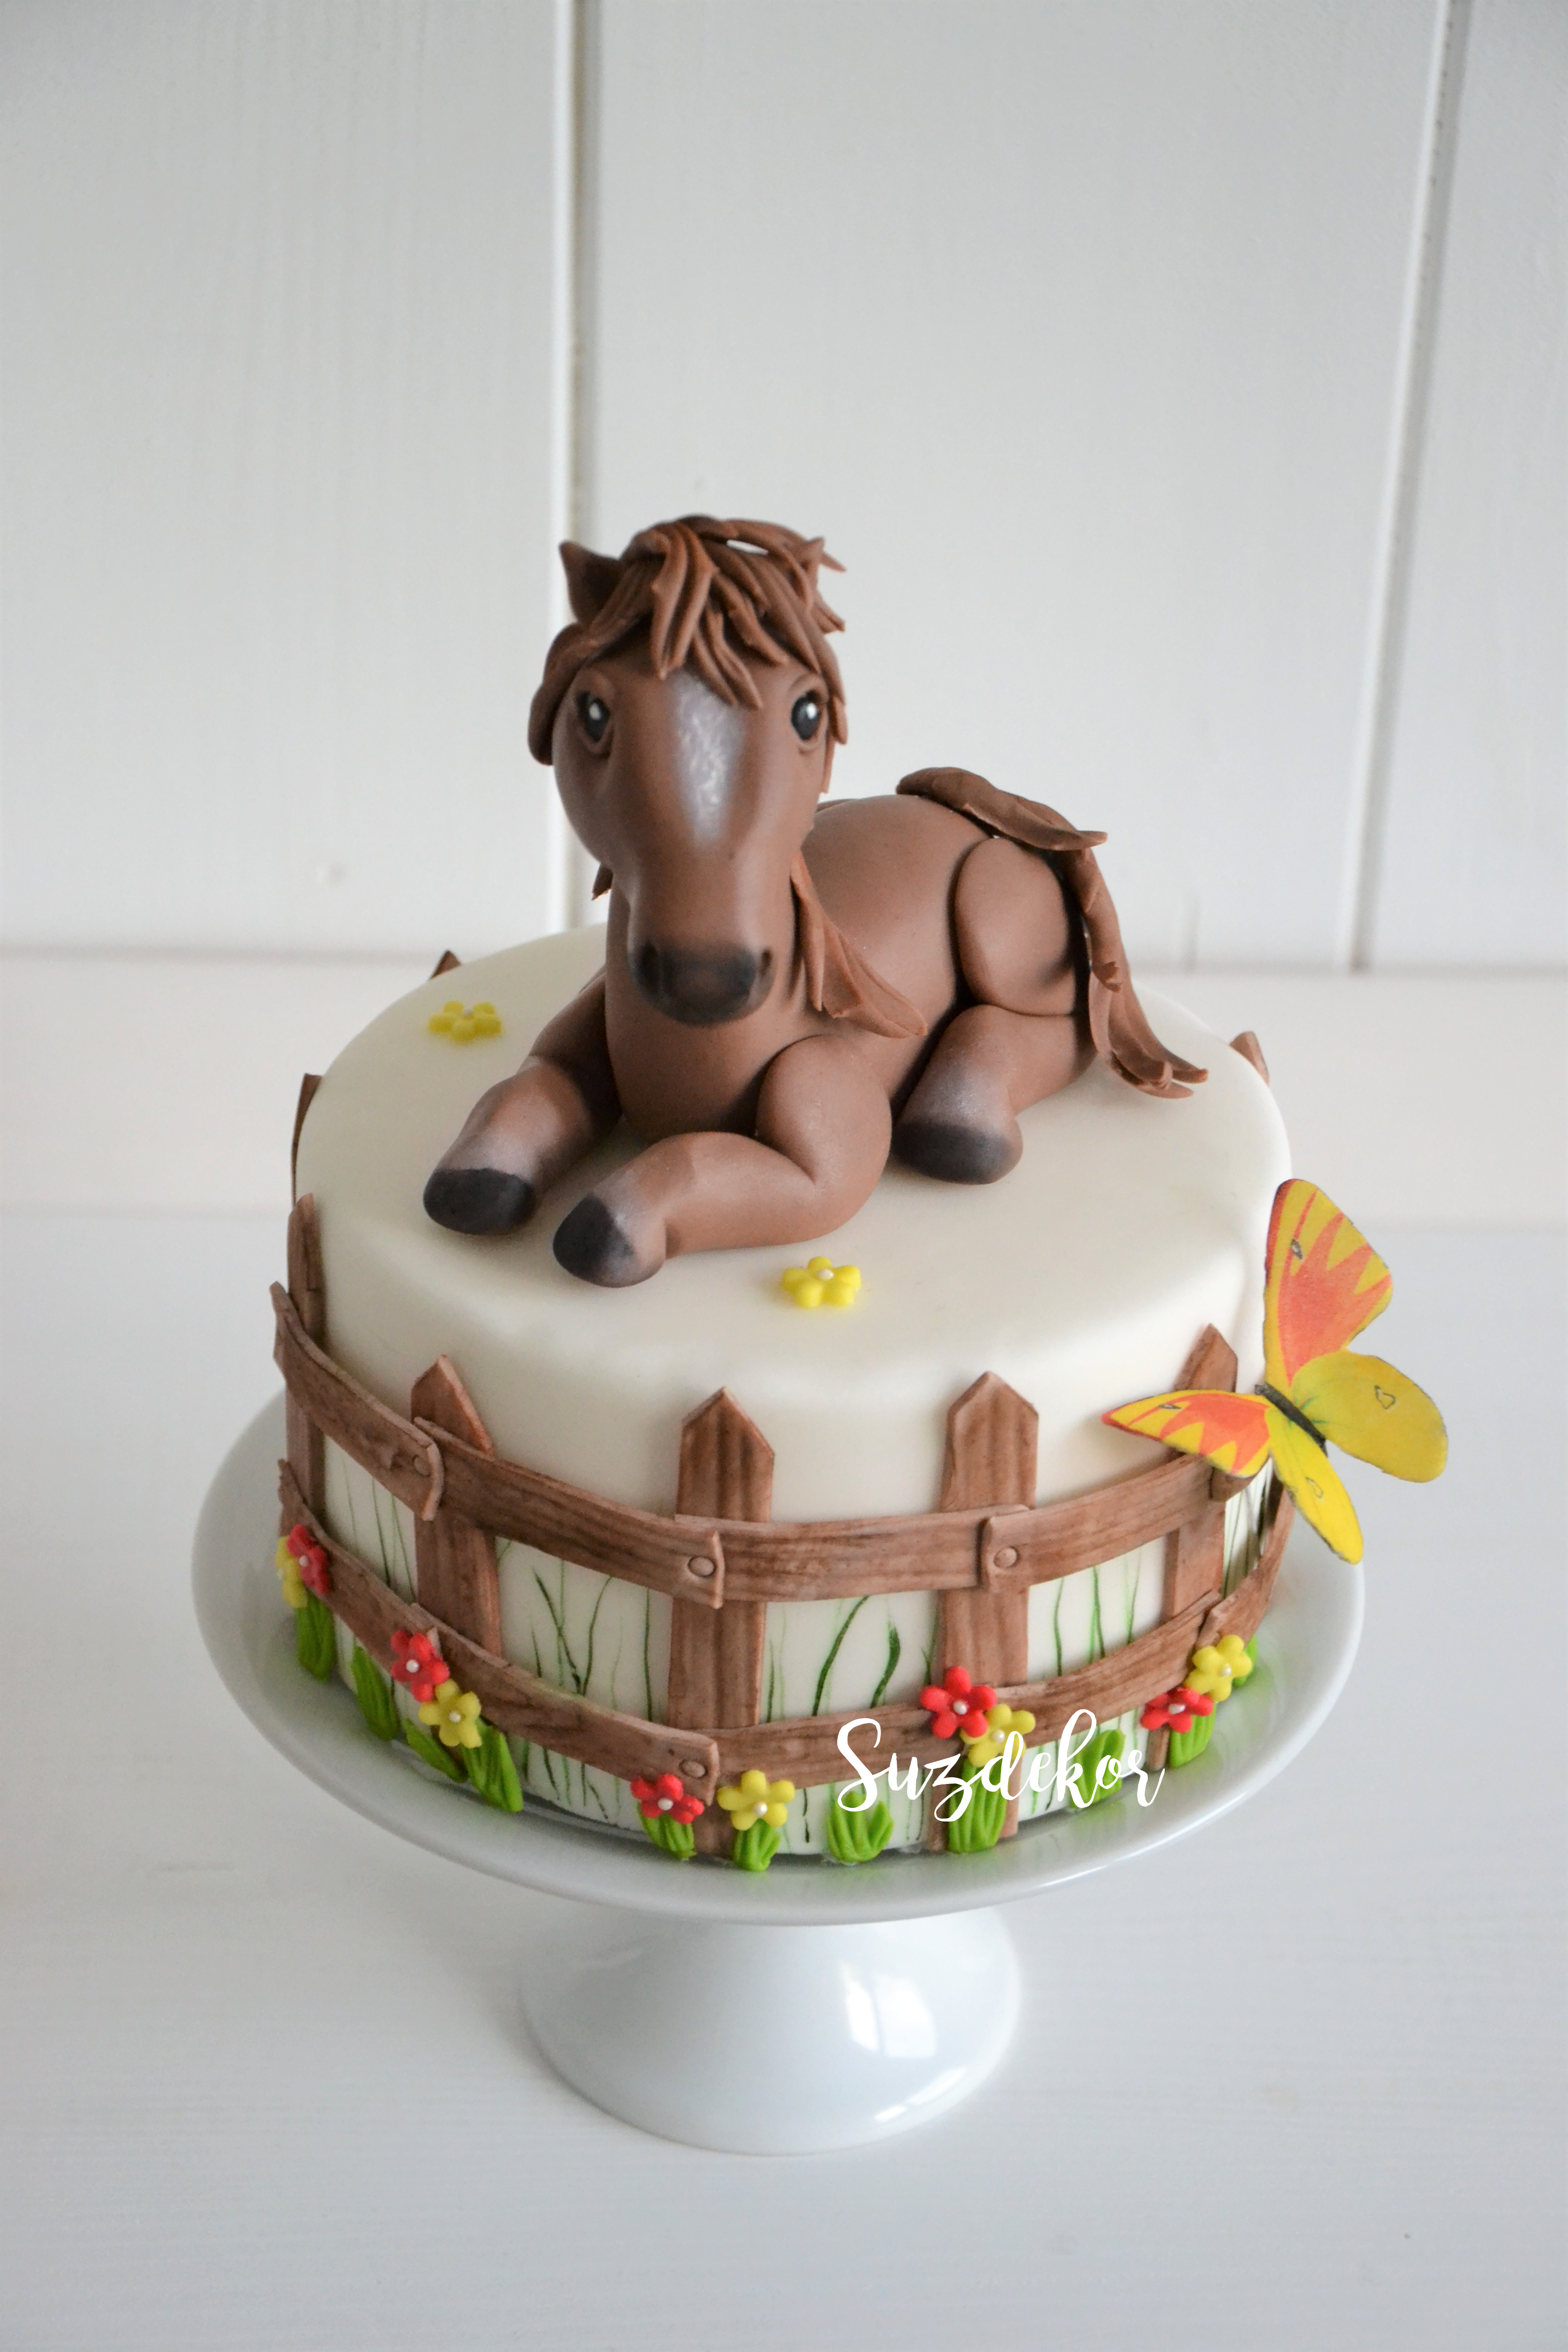 Pleasing Mini Cake With Horse Cake Topper With Images Horse Birthday Birthday Cards Printable Giouspongecafe Filternl